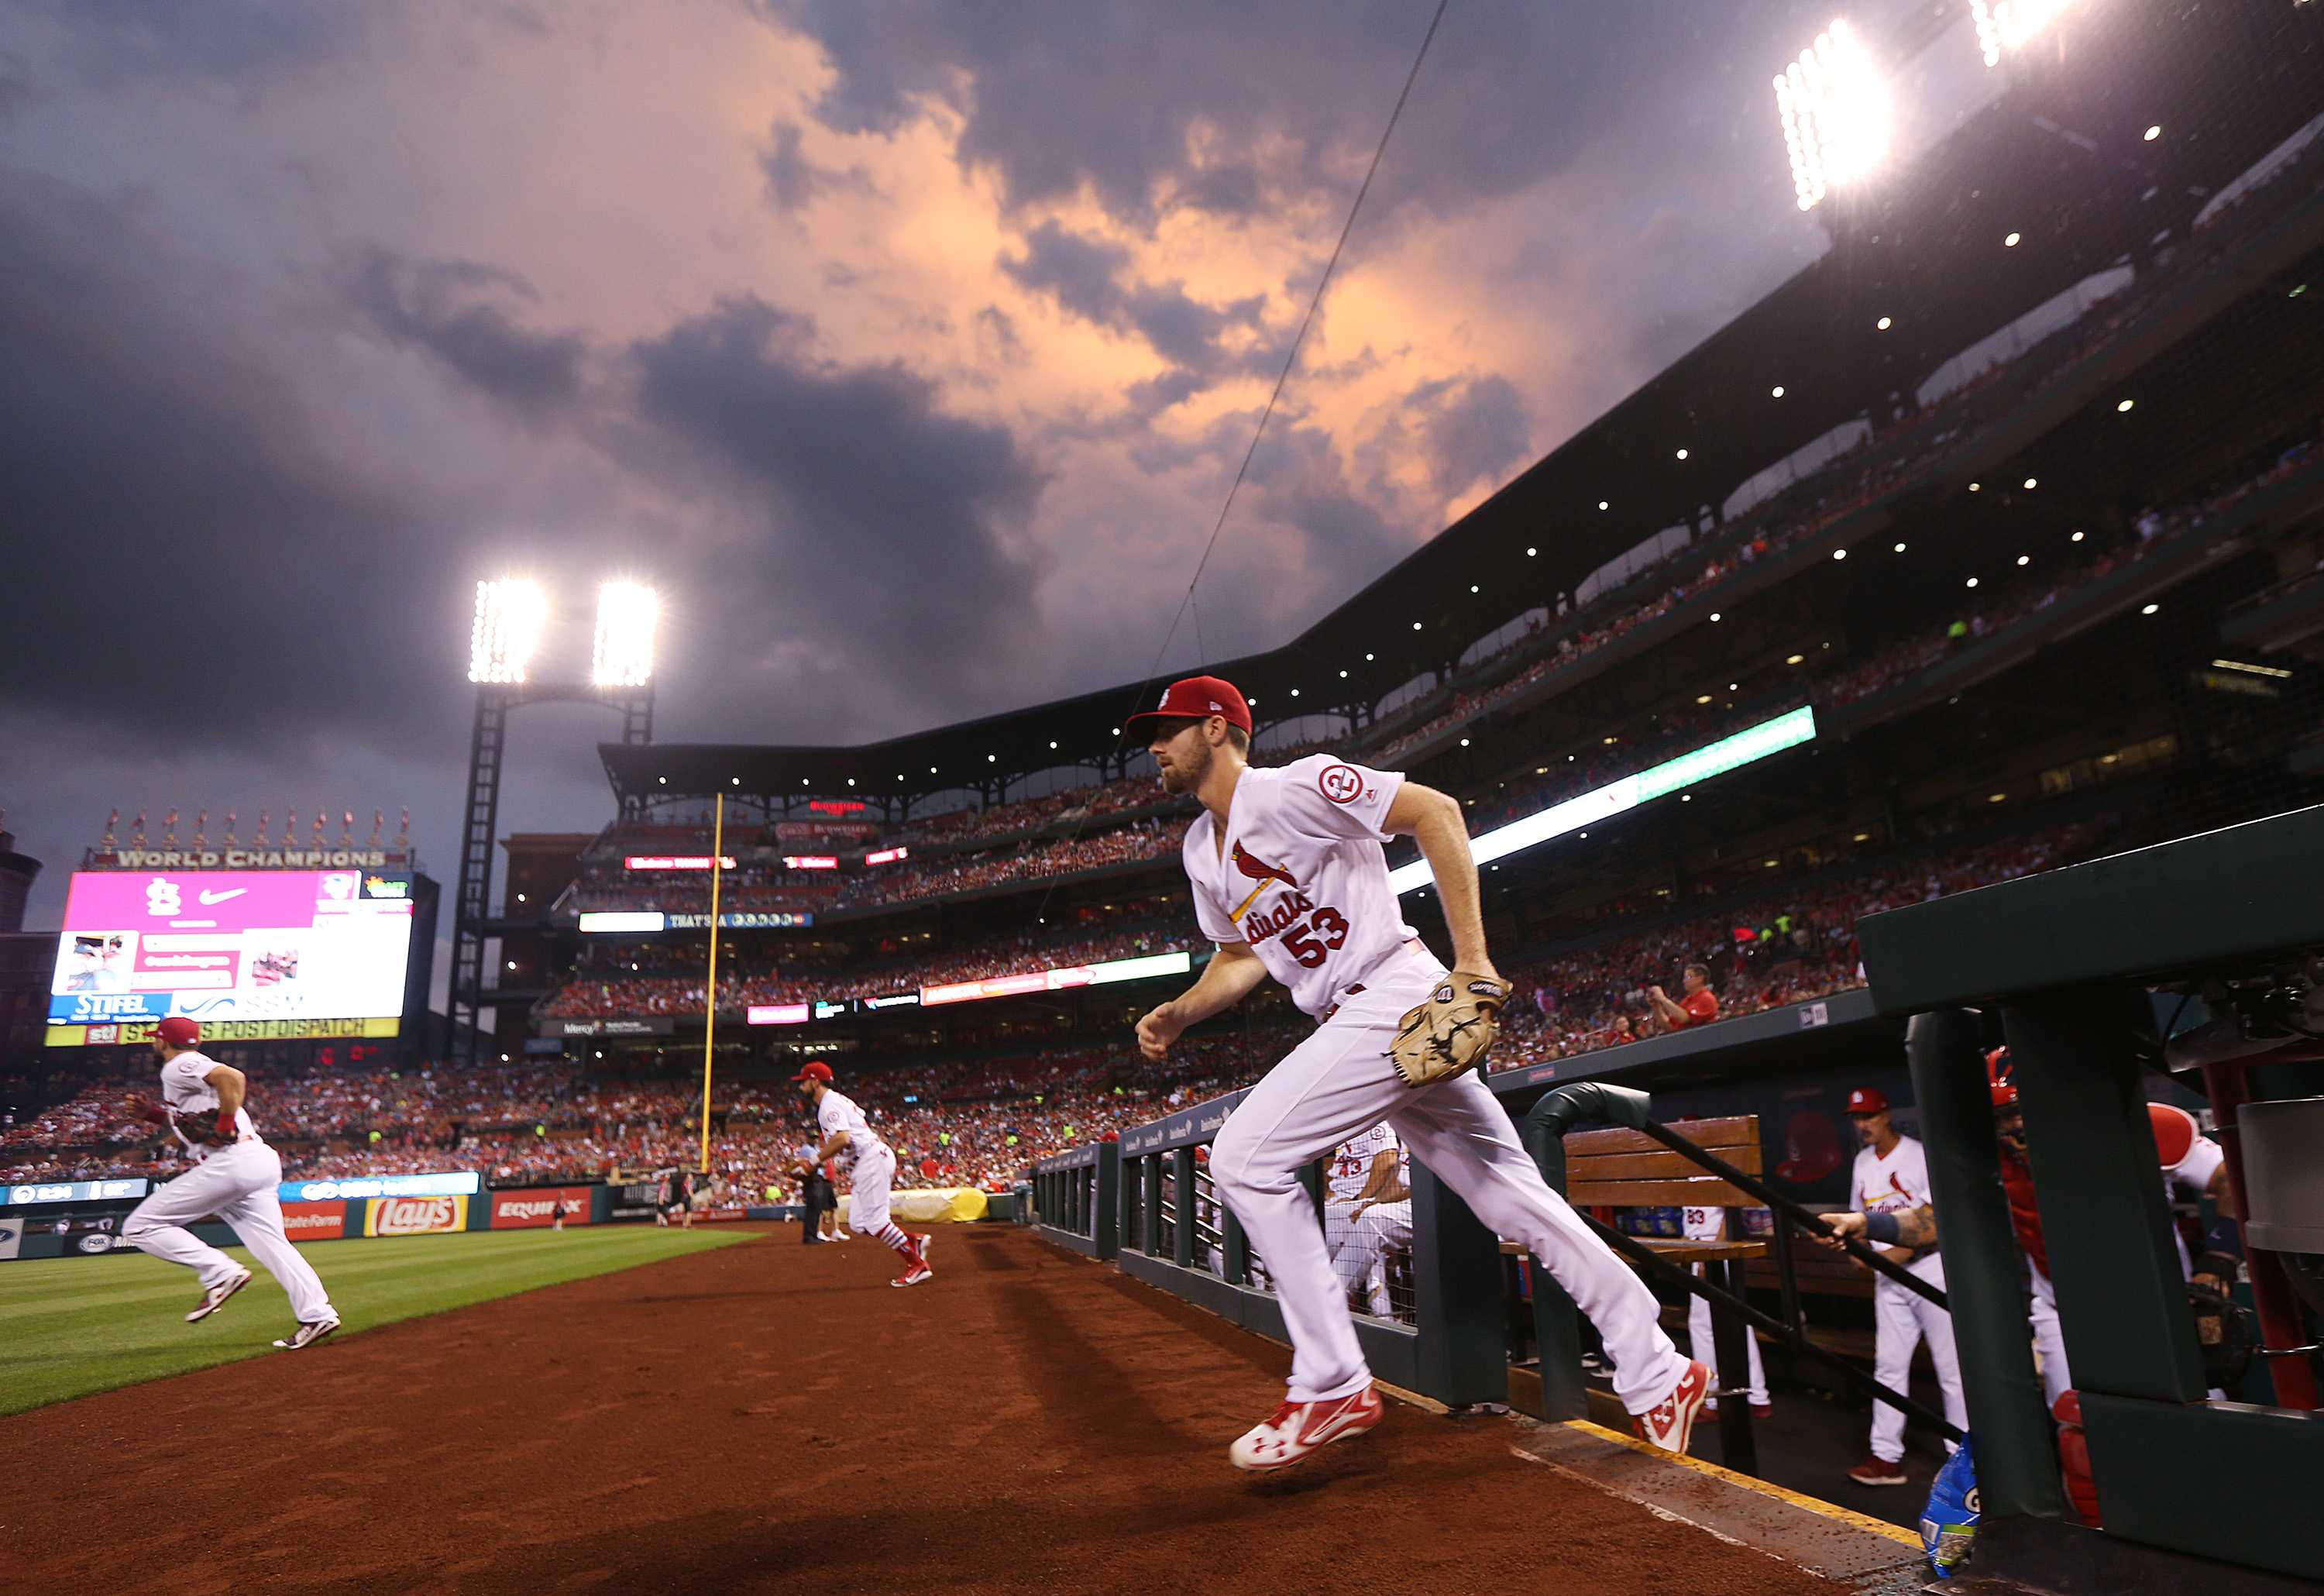 St. Louis Cardinals pitcher John Gant and the Cardinals take the field for a game between the St. Louis Cardinals and the Cleveland Indians at Busch Stadium on Monday,  June 25, 2018, in St. Louis, Mo. The Cardinals won, 4-0. (Chris Lee/St. Louis Post-Dispatch/TNS)